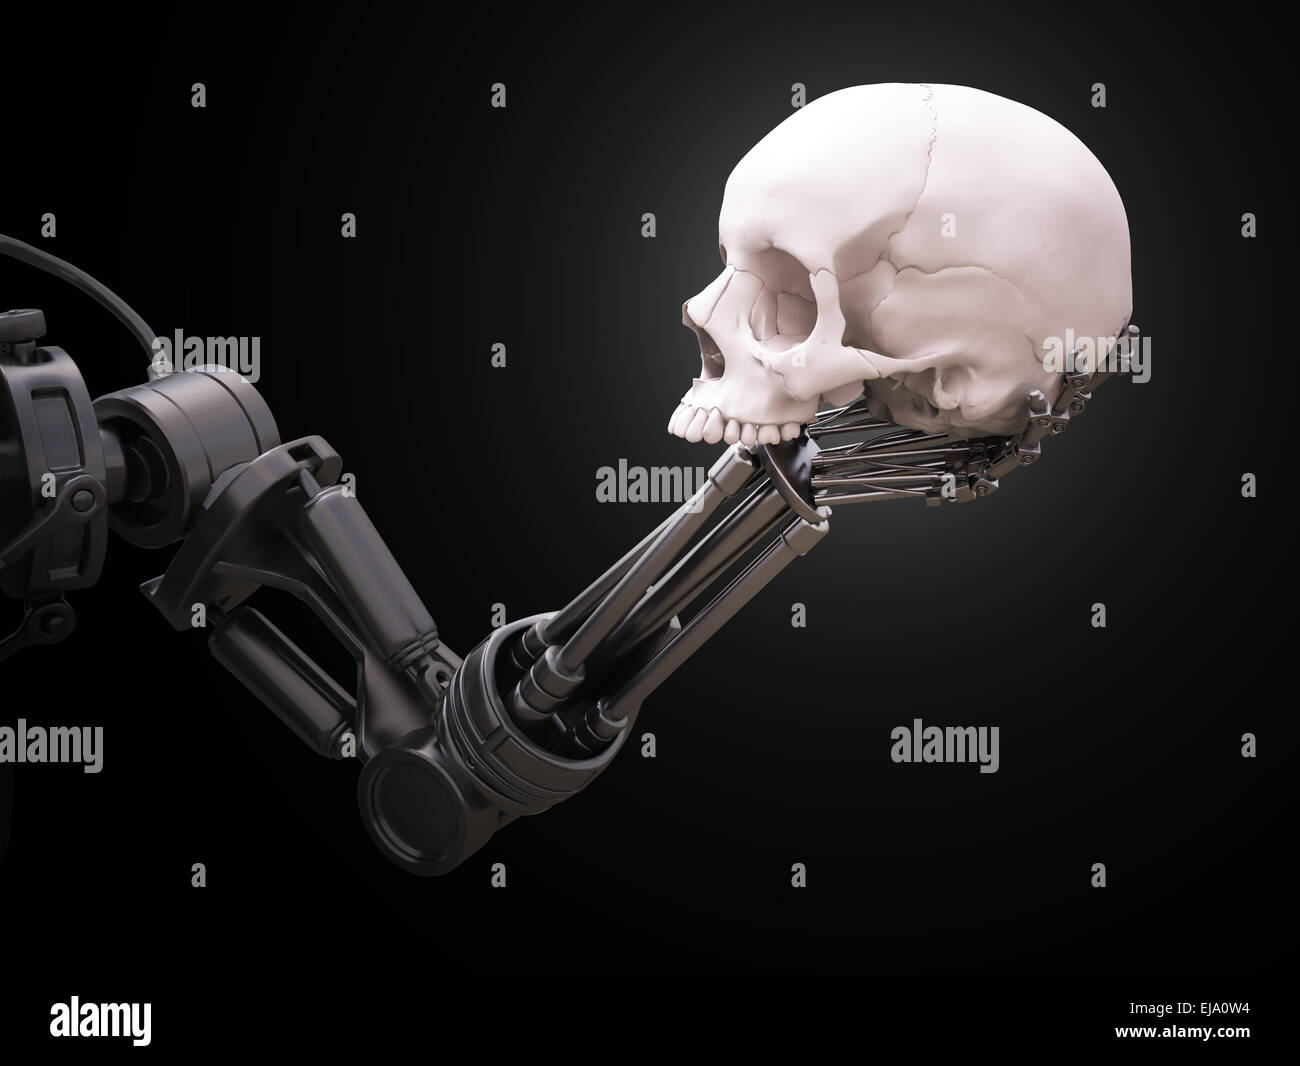 Robot arm holding a human skull - Stock Image